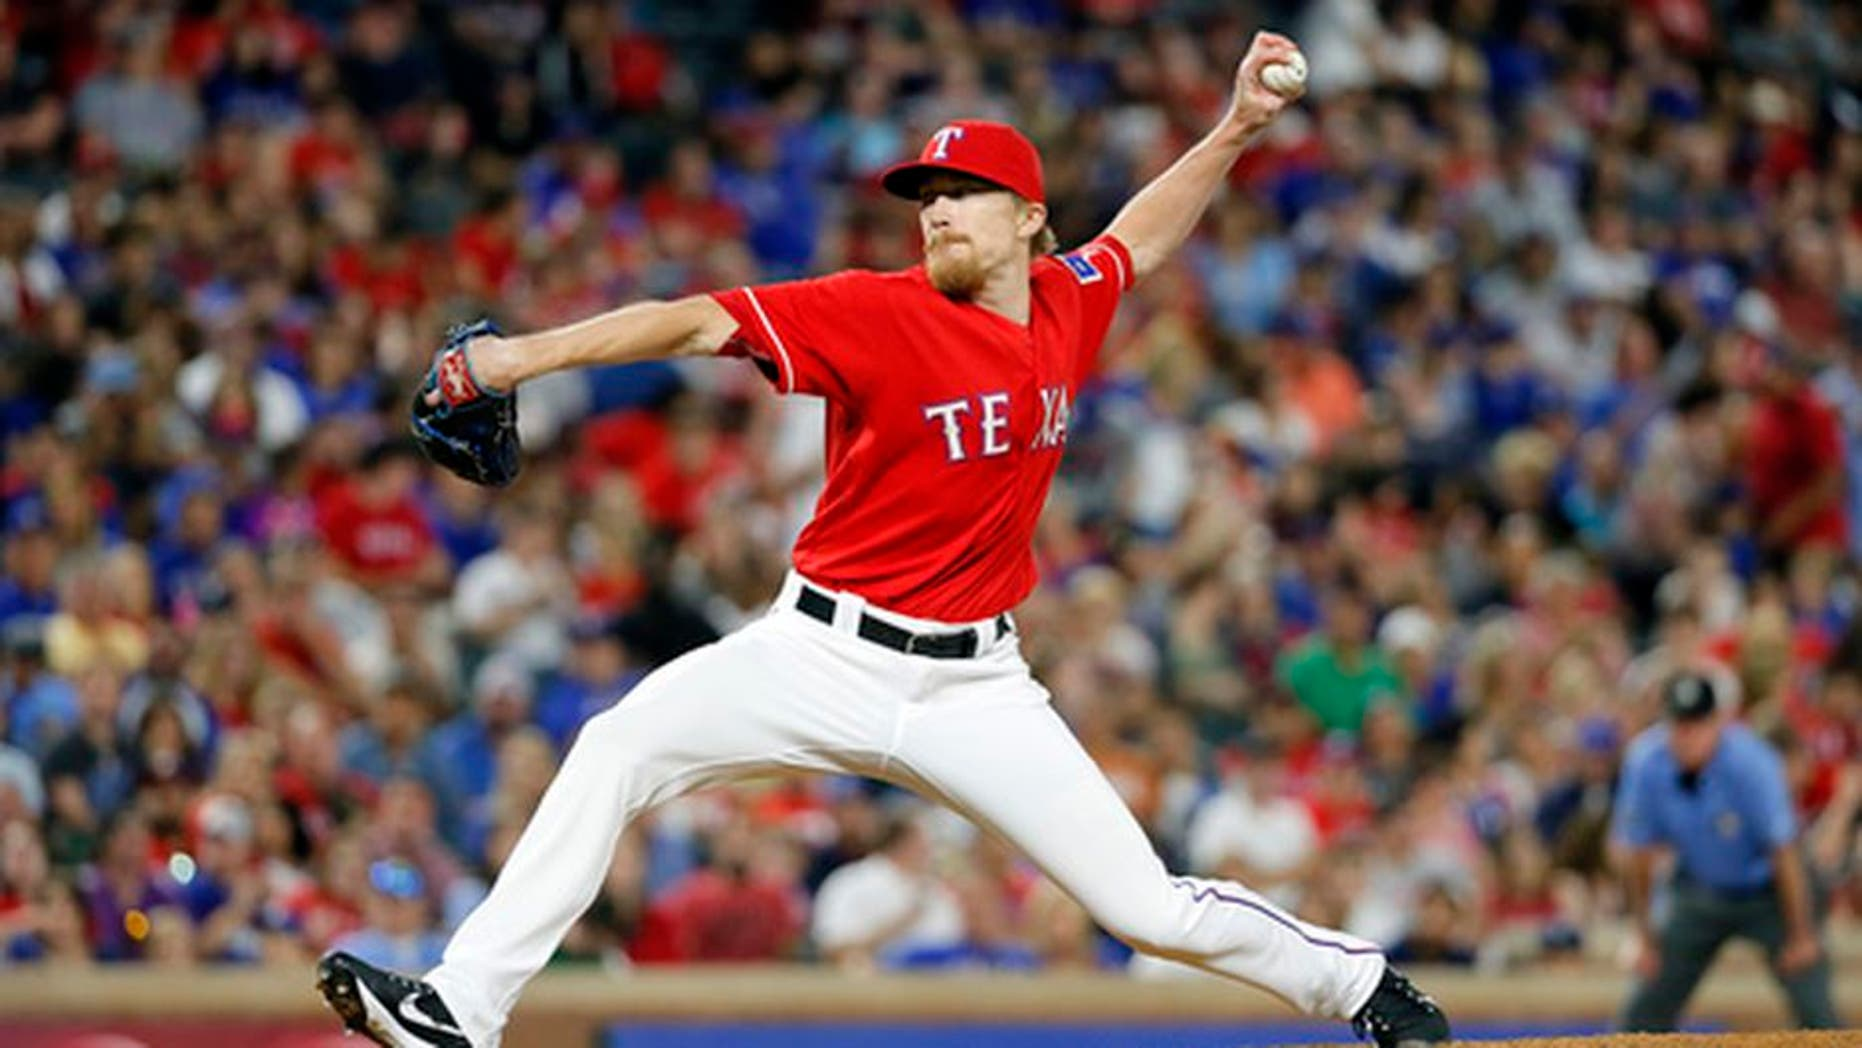 FILE - In this Sept. 30, 2016, file photo, Texas Rangers relief pitcher Jake Diekman throws to the Tampa Bay Ray during a baseball game in Arlington, Texas. Diekman is already counting the days until he can start throwing again, even though he still has another surgery in June. Diekman was back with his teammates Thursday, April 20, for the first time since the second of three operations to remove and rebuild his colon during treatment for the ulcerative colitis, a digestive condition he has dealt with much of his life. (AP Photo/Tony Gutierrez, File)